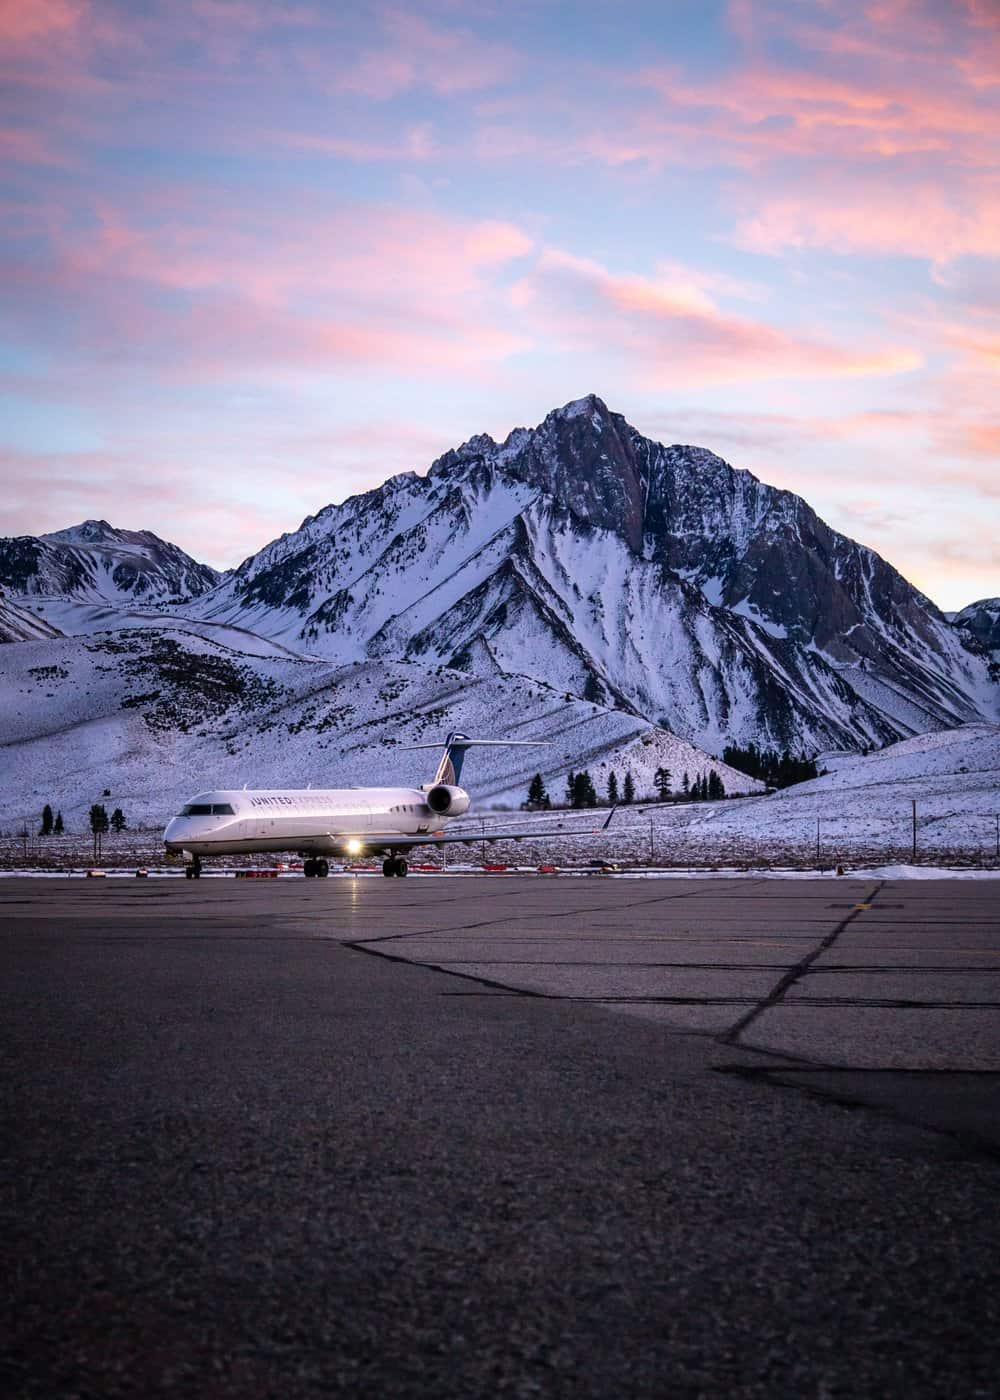 Mammoth Lakes Tourism airport